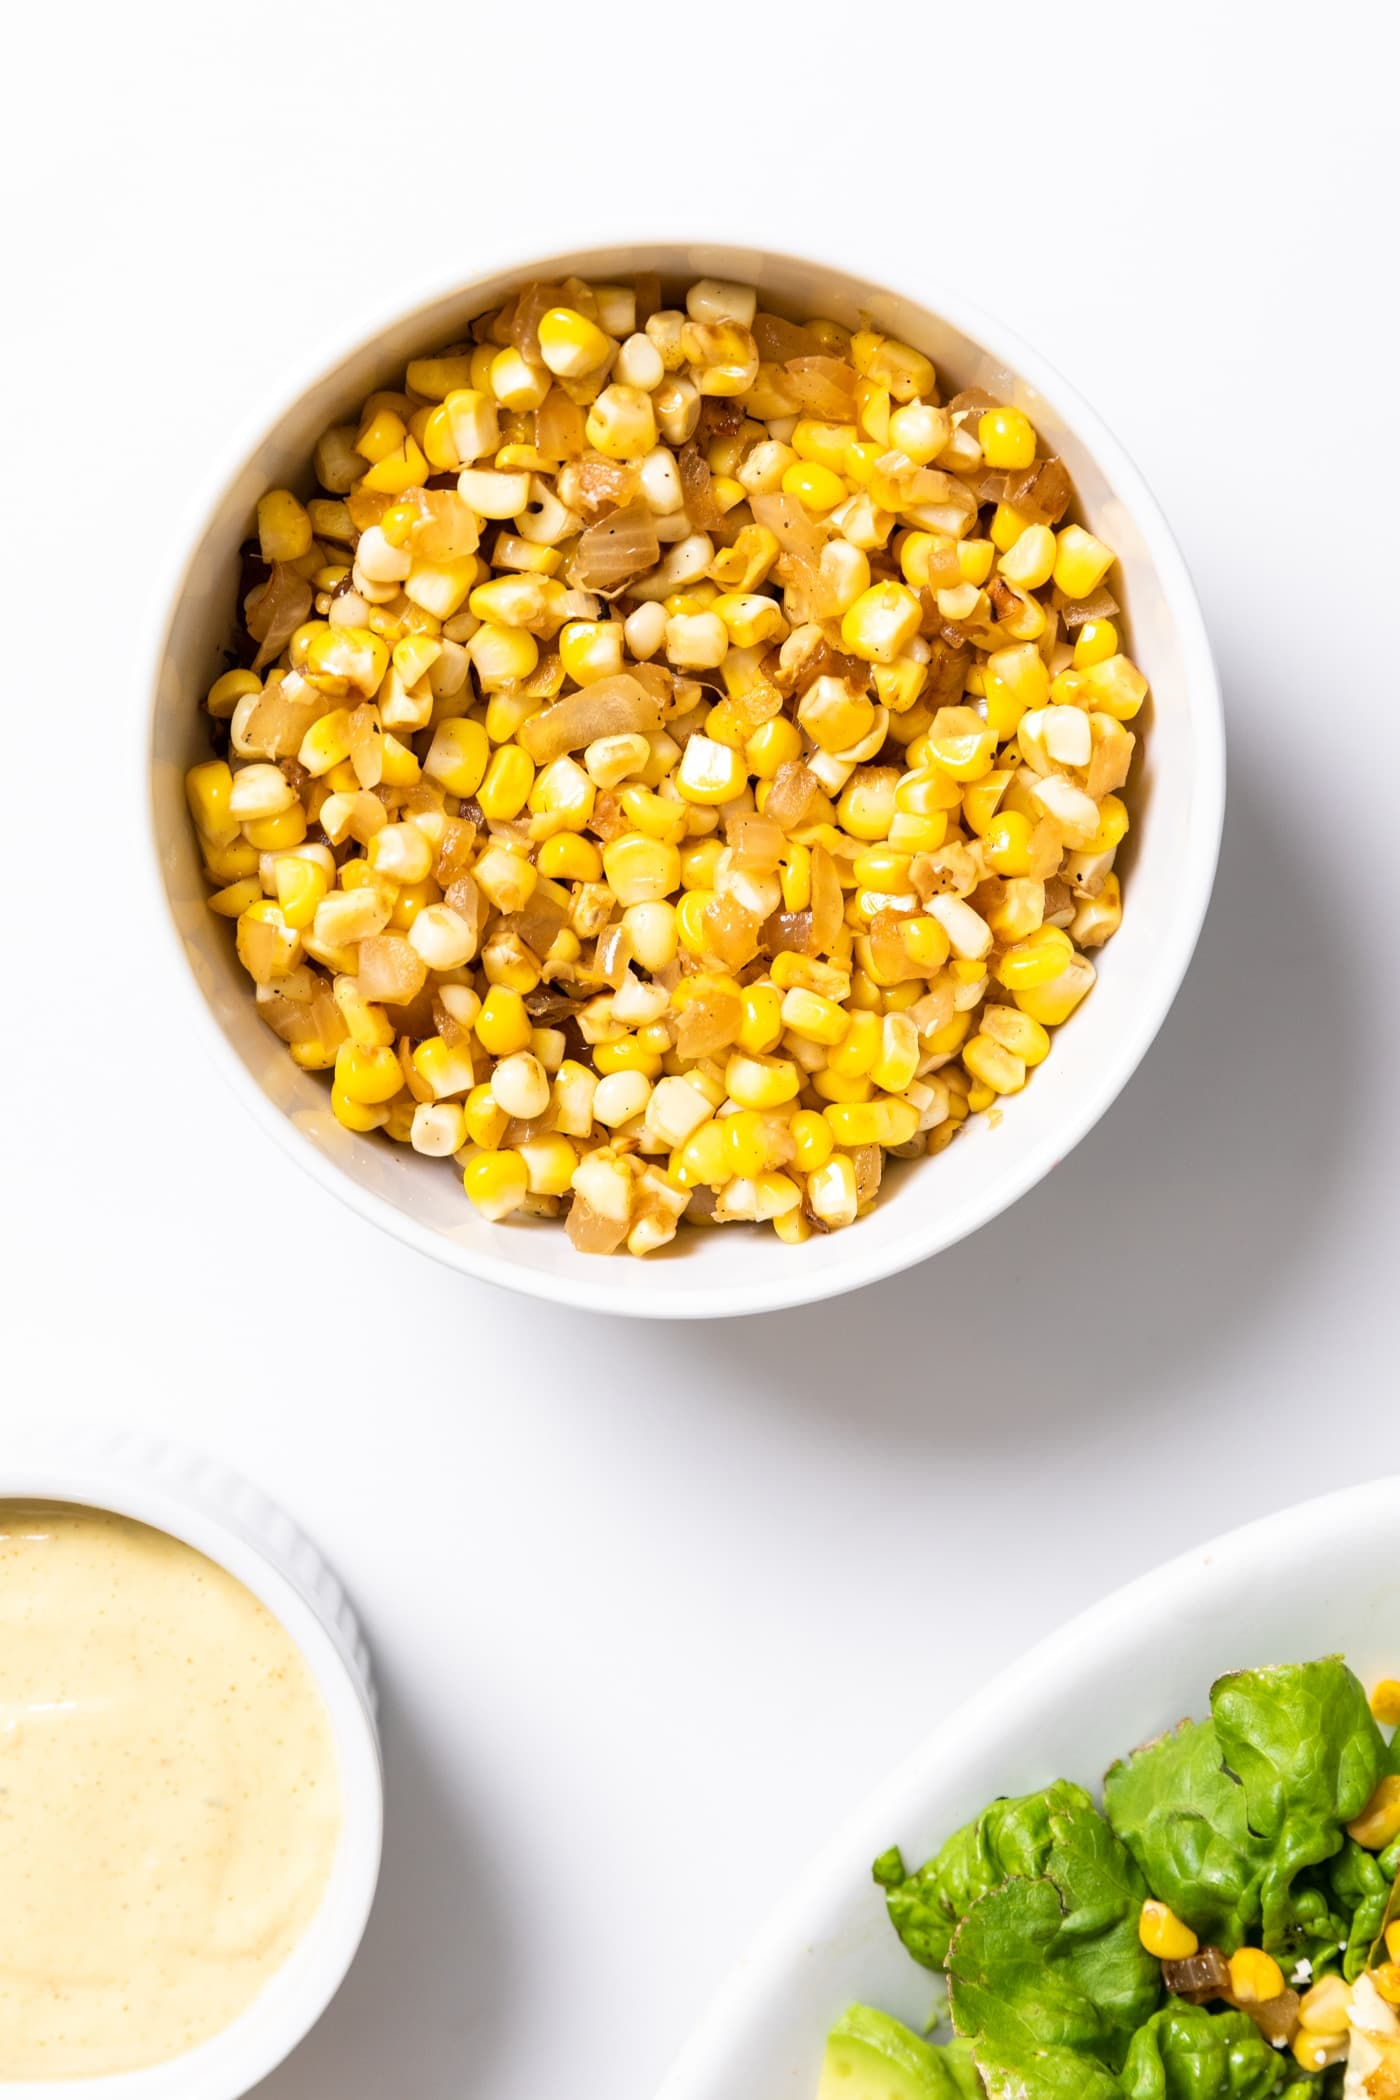 Top down view of cooked combination of sweet corn and onion sitting in white bowl after being on the stove